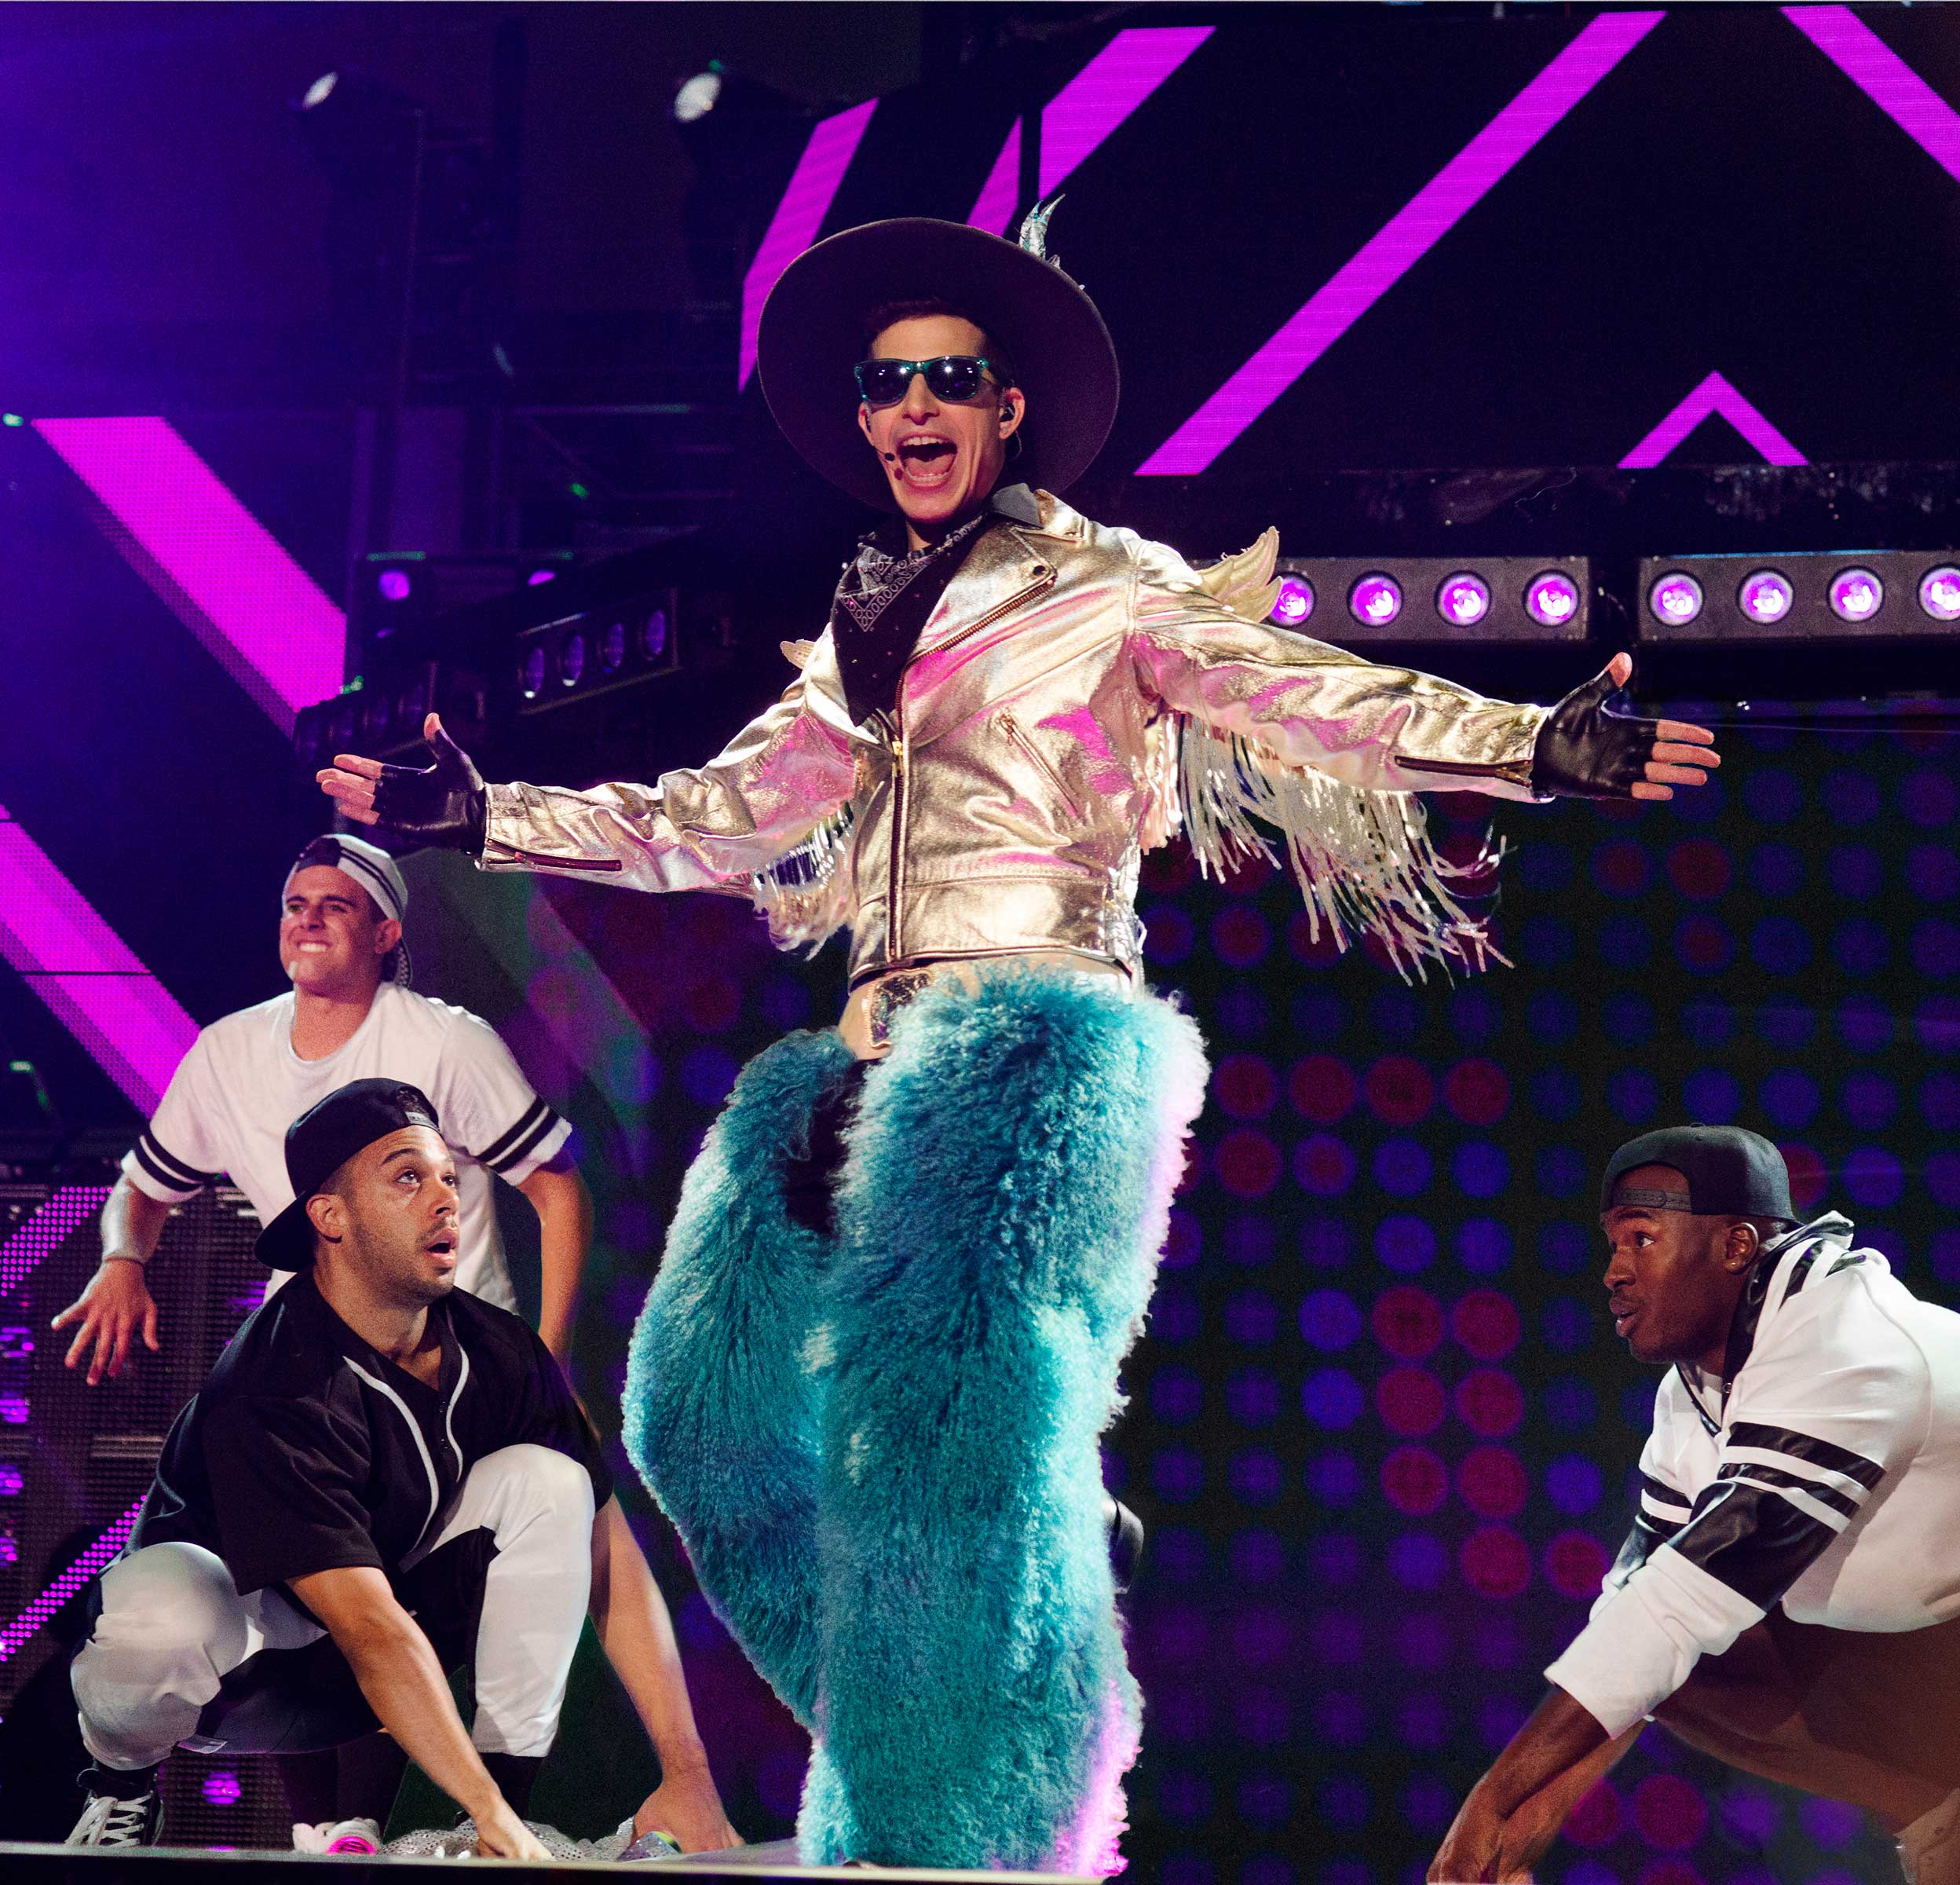 Andy Samberg puts the pale pop in Popstar, 4real